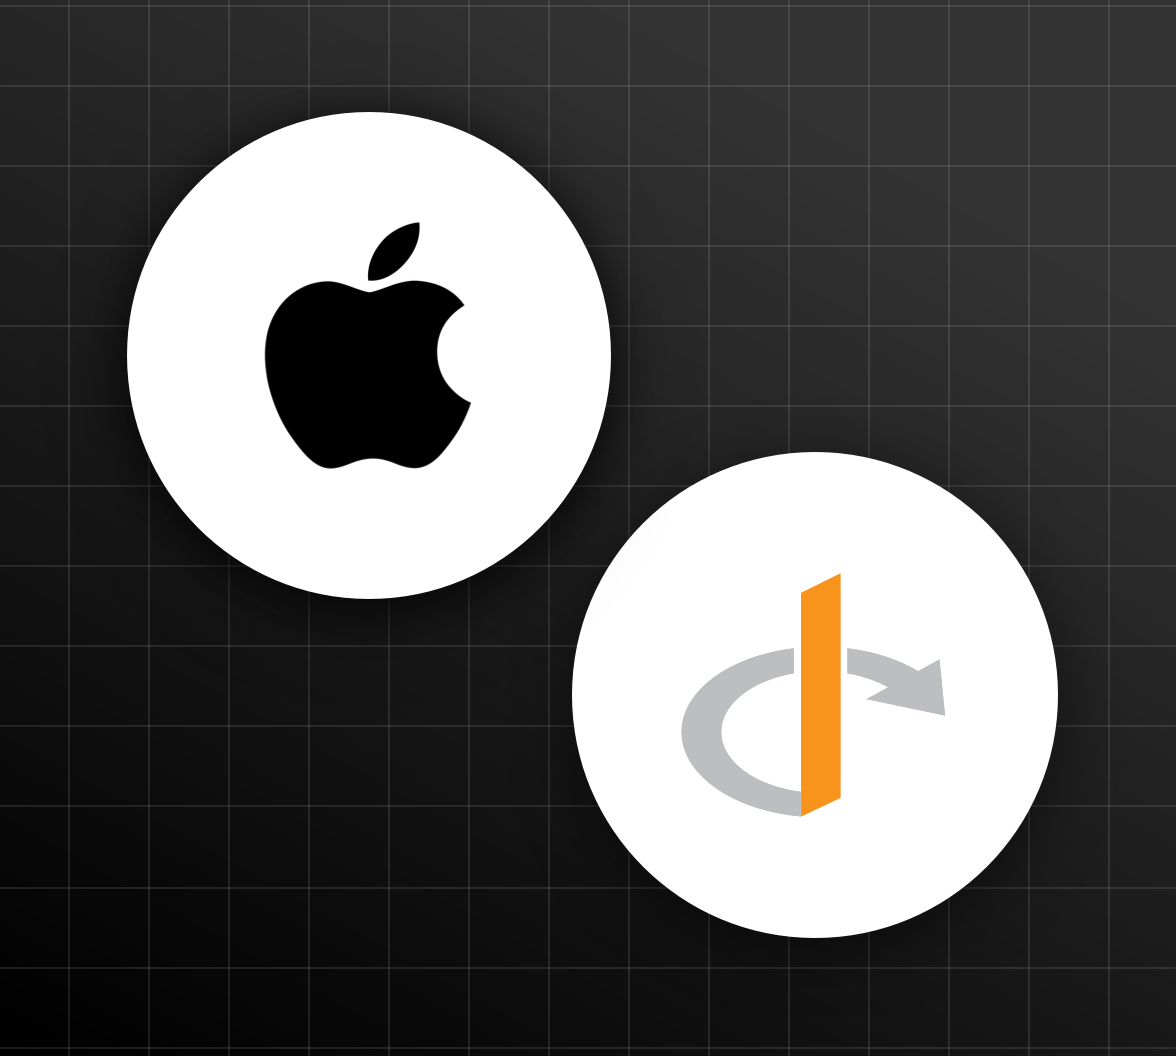 OpenID Foundation and Apple logo illustration